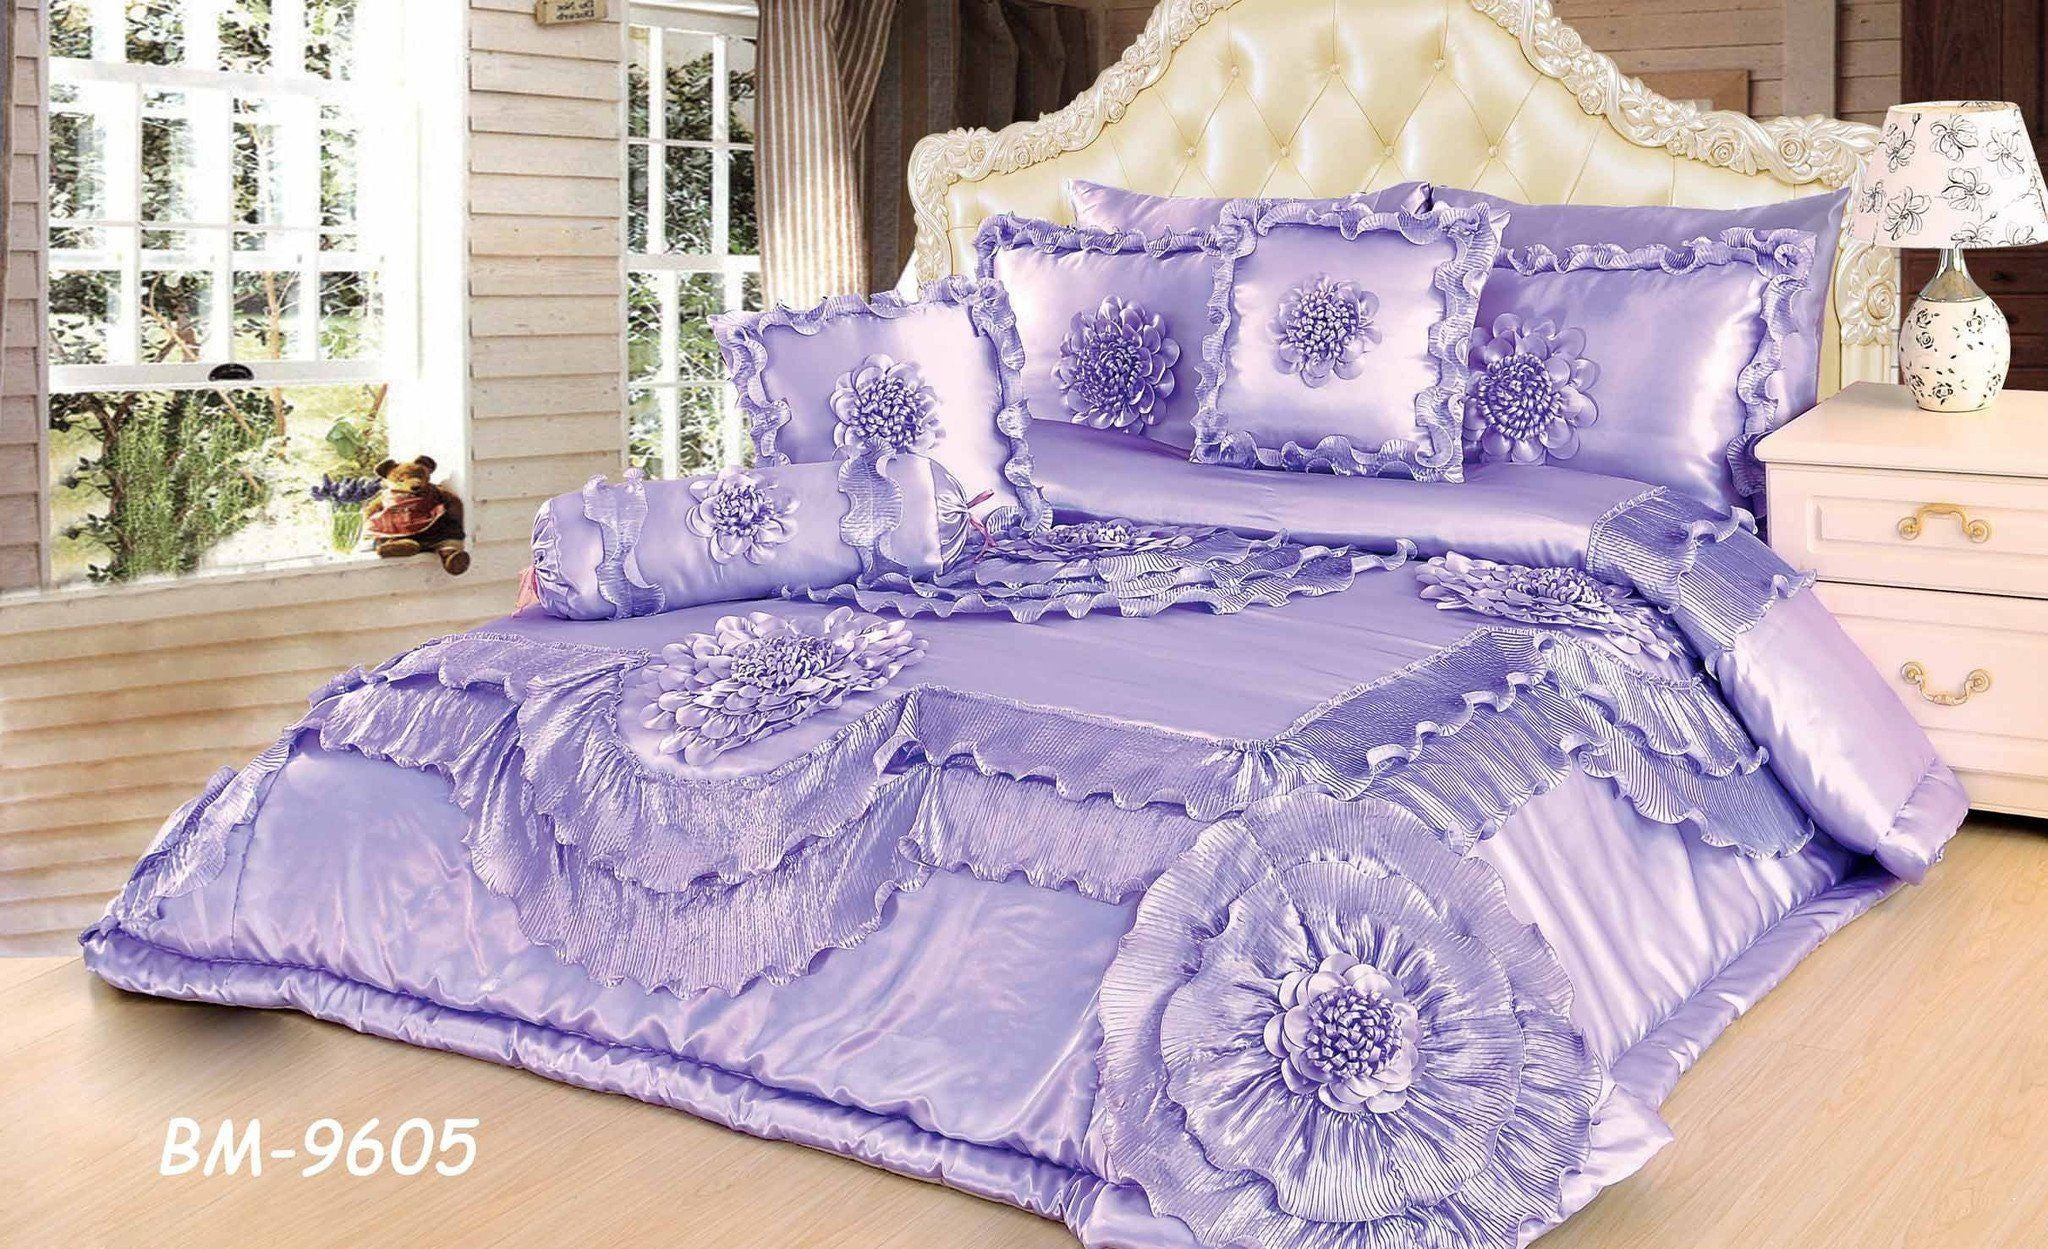 overstock shipping belvedere comforter today sateen product bedding set piece cottage stone bath cotton percent free